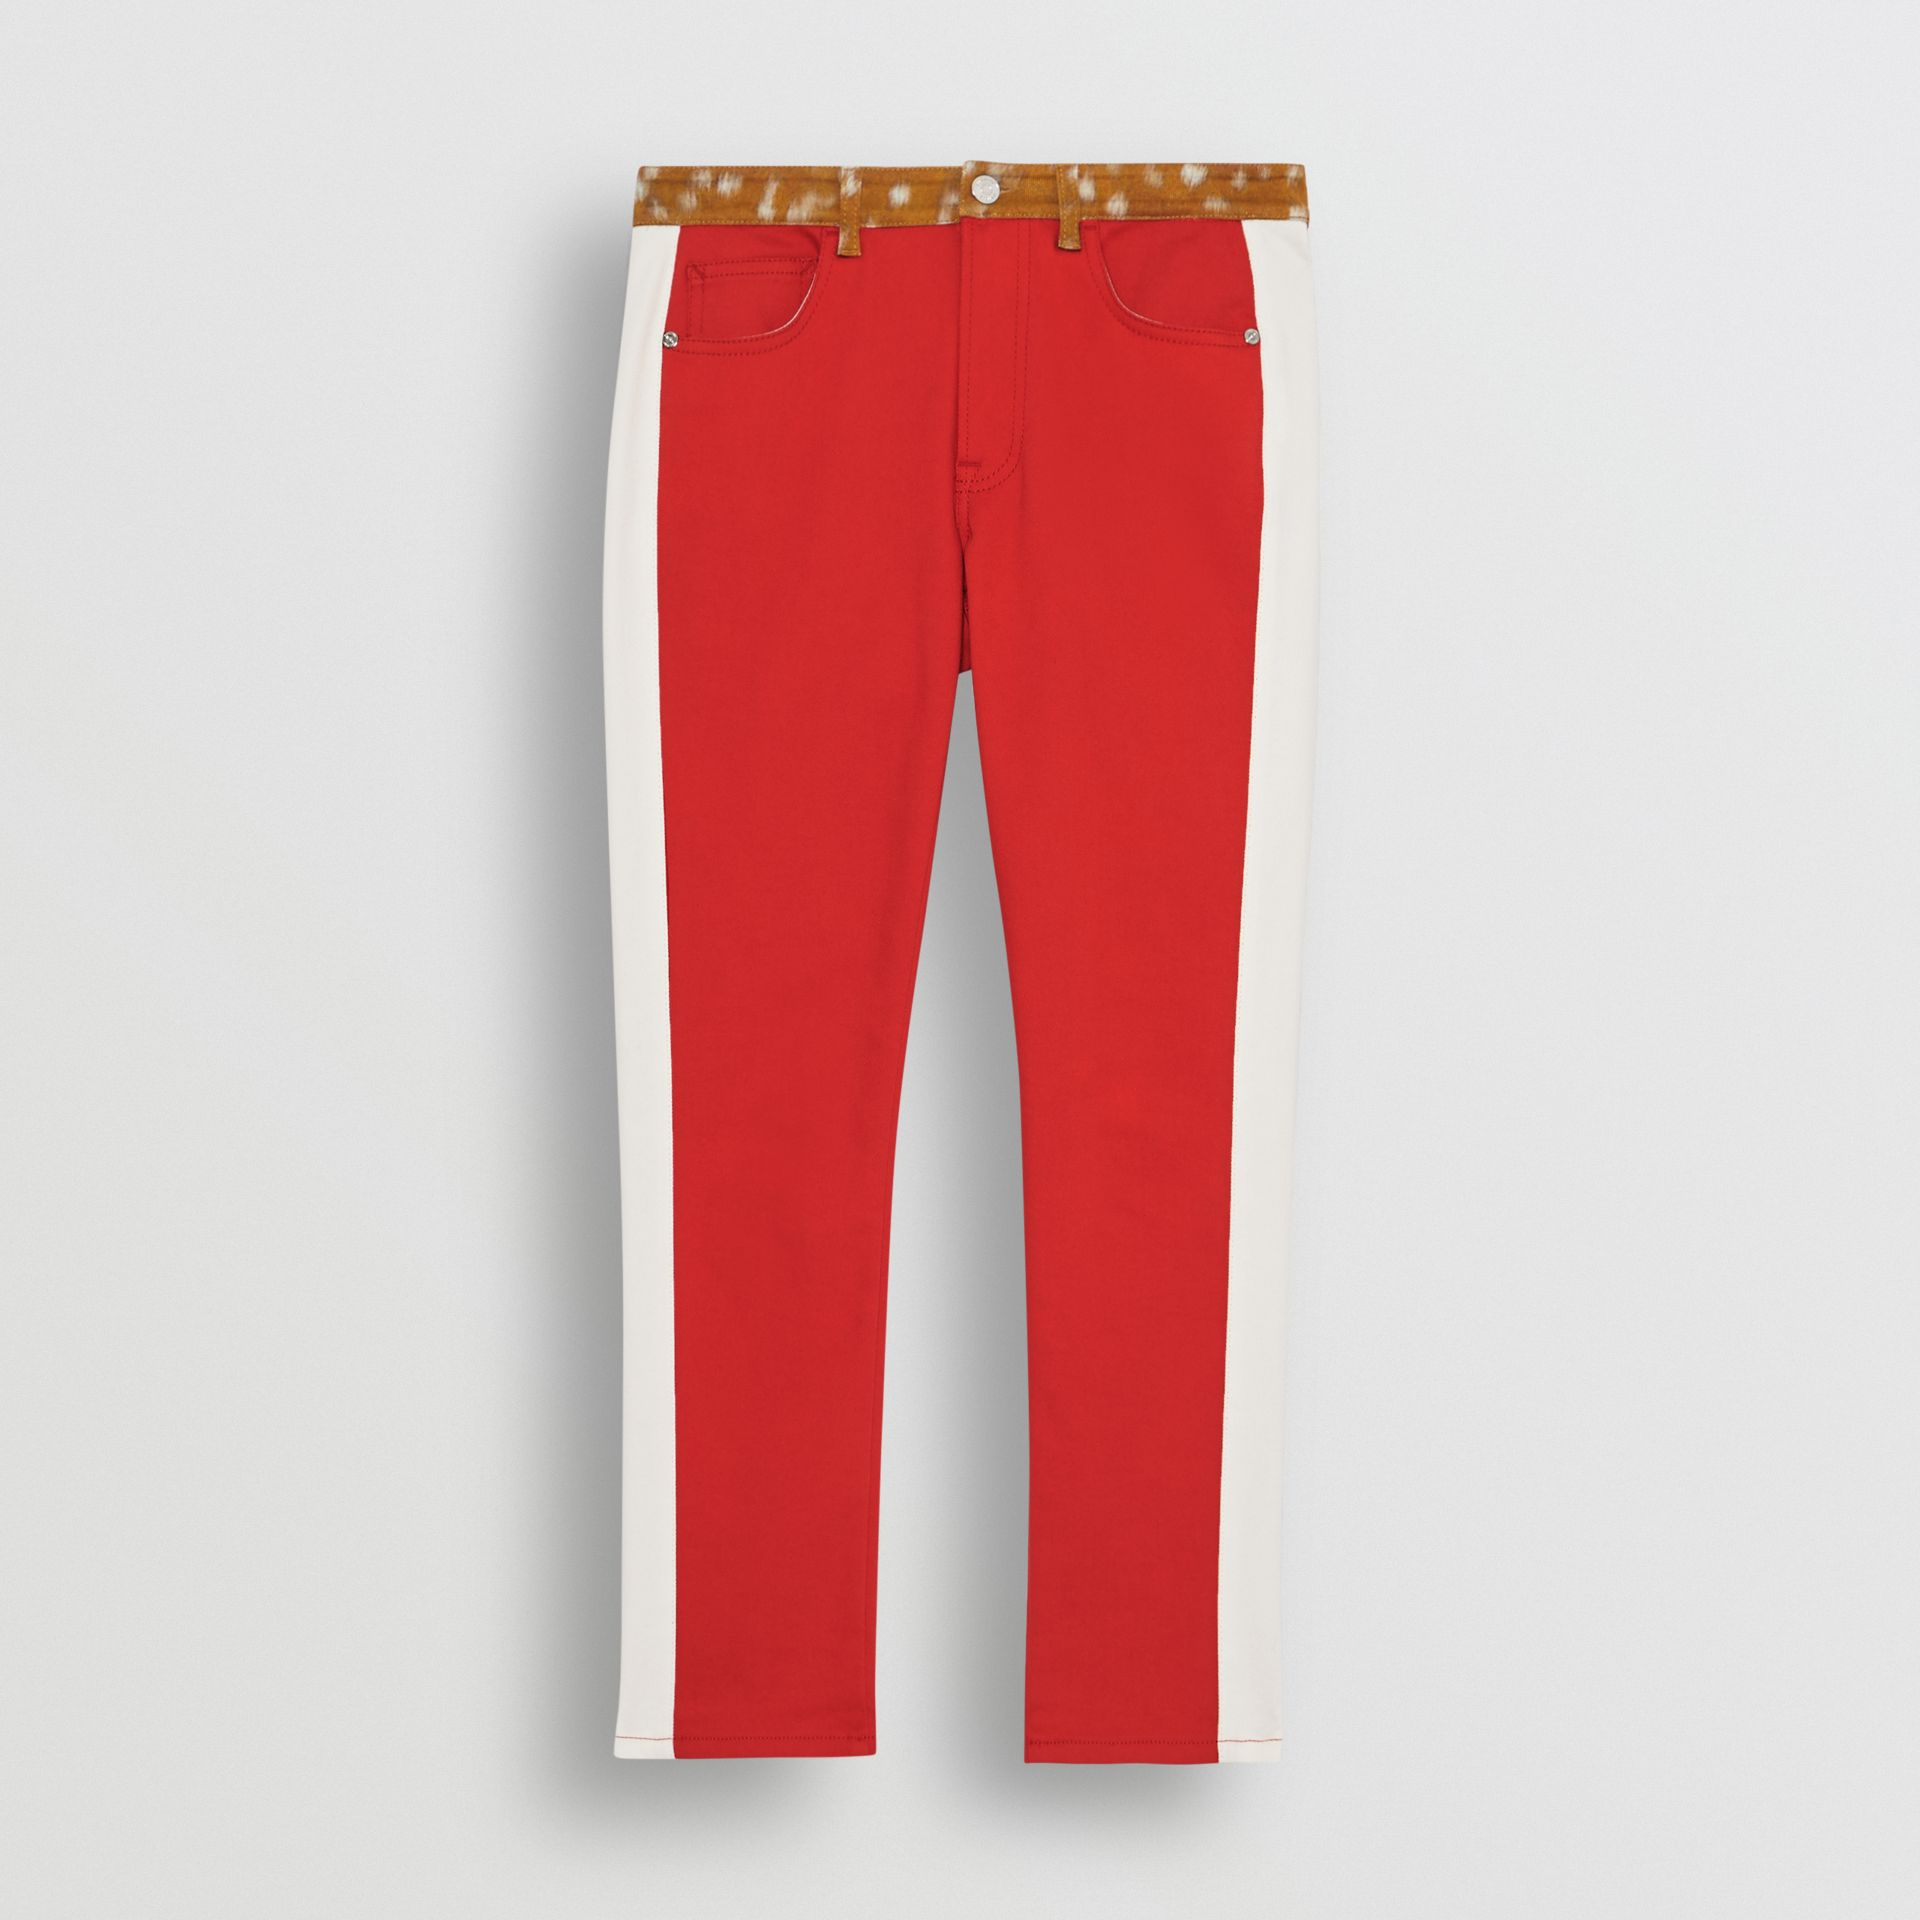 Straight Fit Deer Print Trim Japanese Denim Jeans in Bright Red - Women | Burberry Hong Kong - gallery image 3